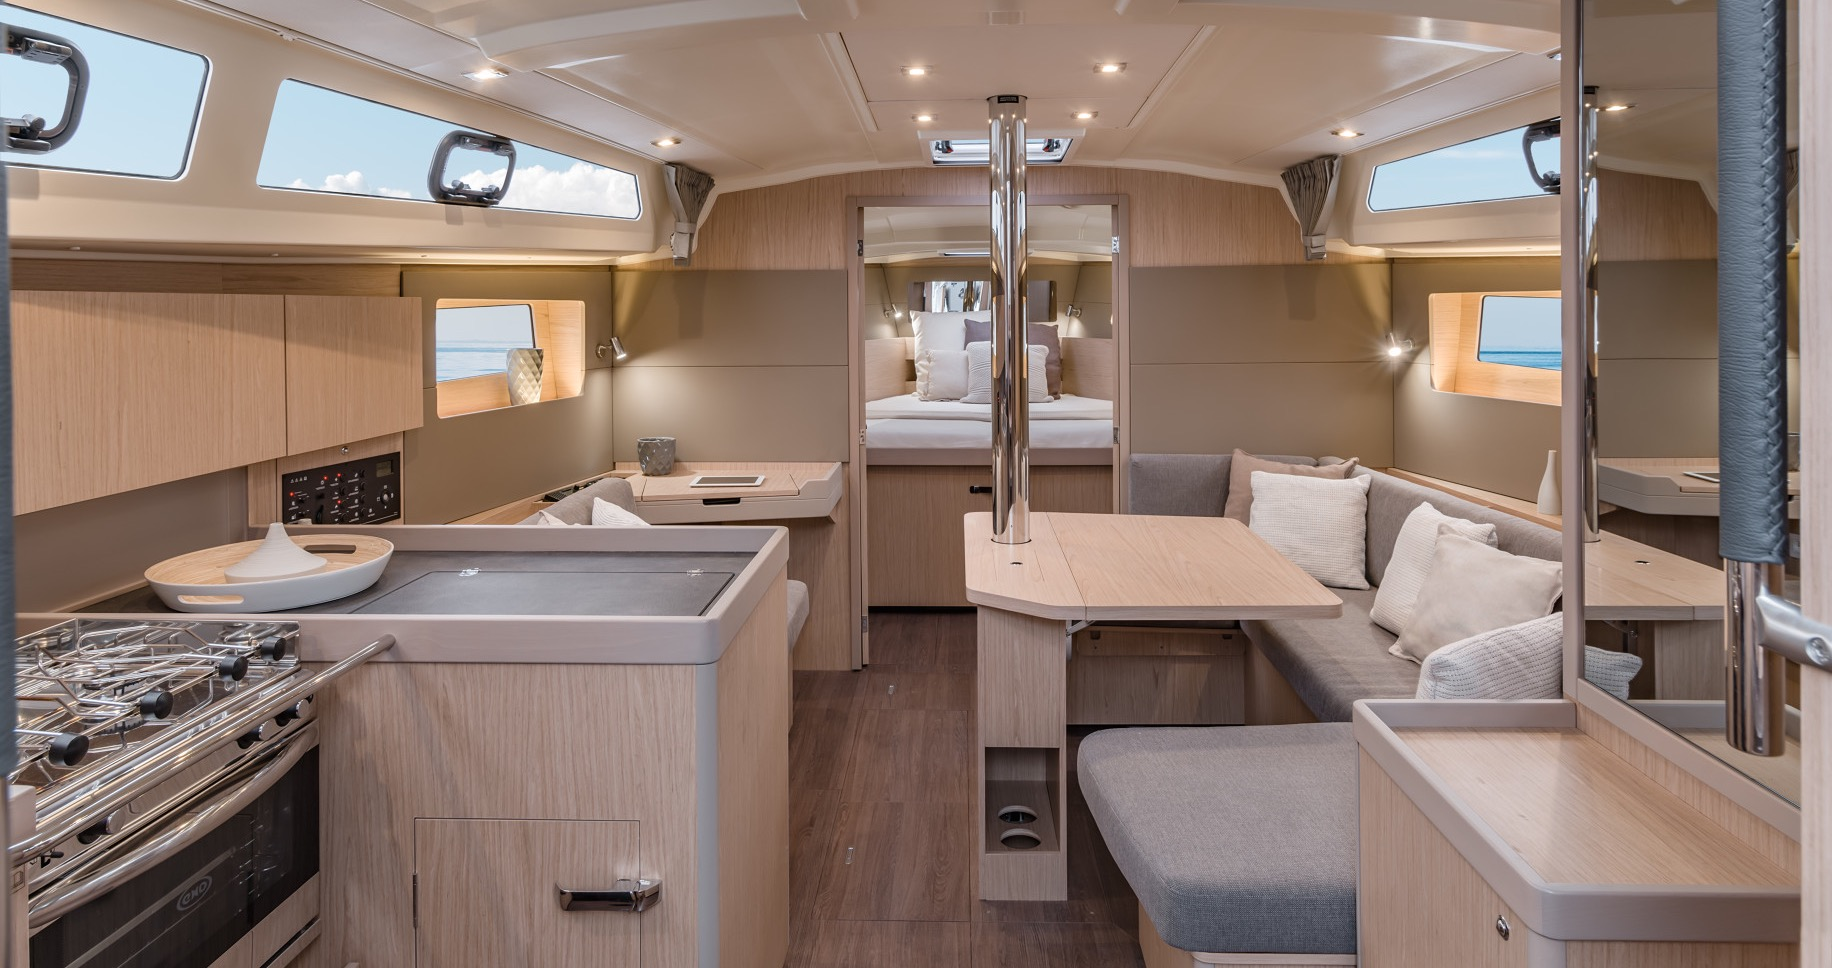 Interior of an Oceanis 41.1, by 7 islands yachting